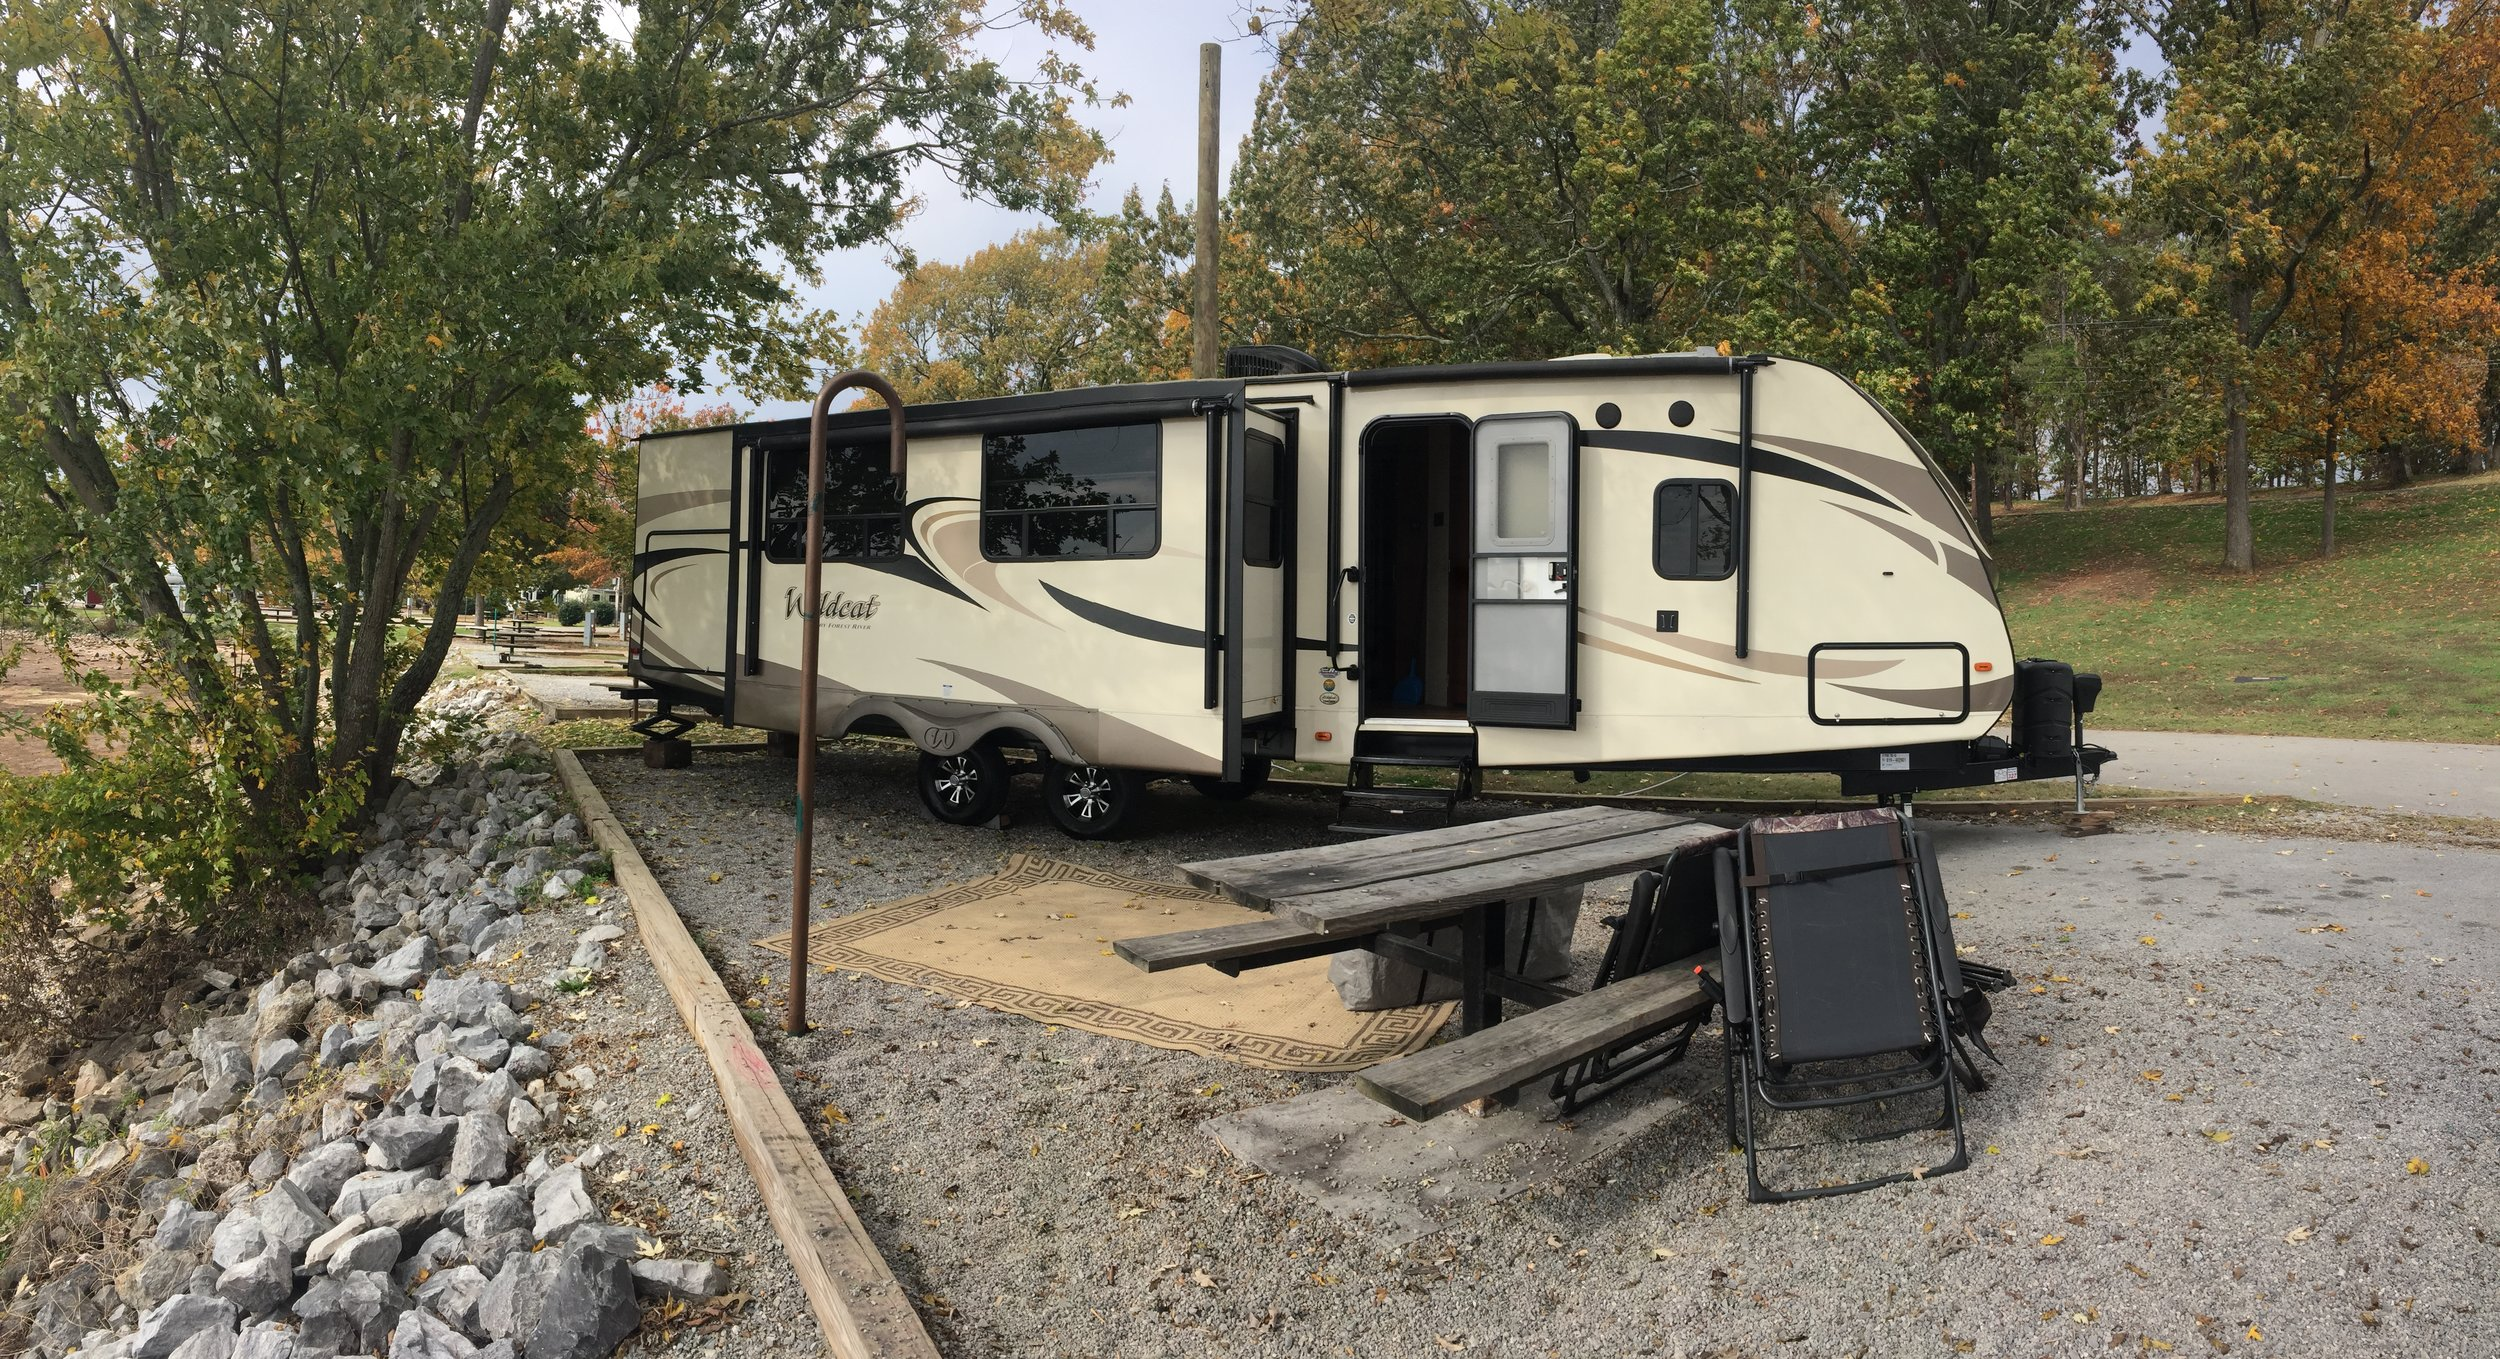 Check out campground reviews and boondocking stations to help plan your next trip with ease.